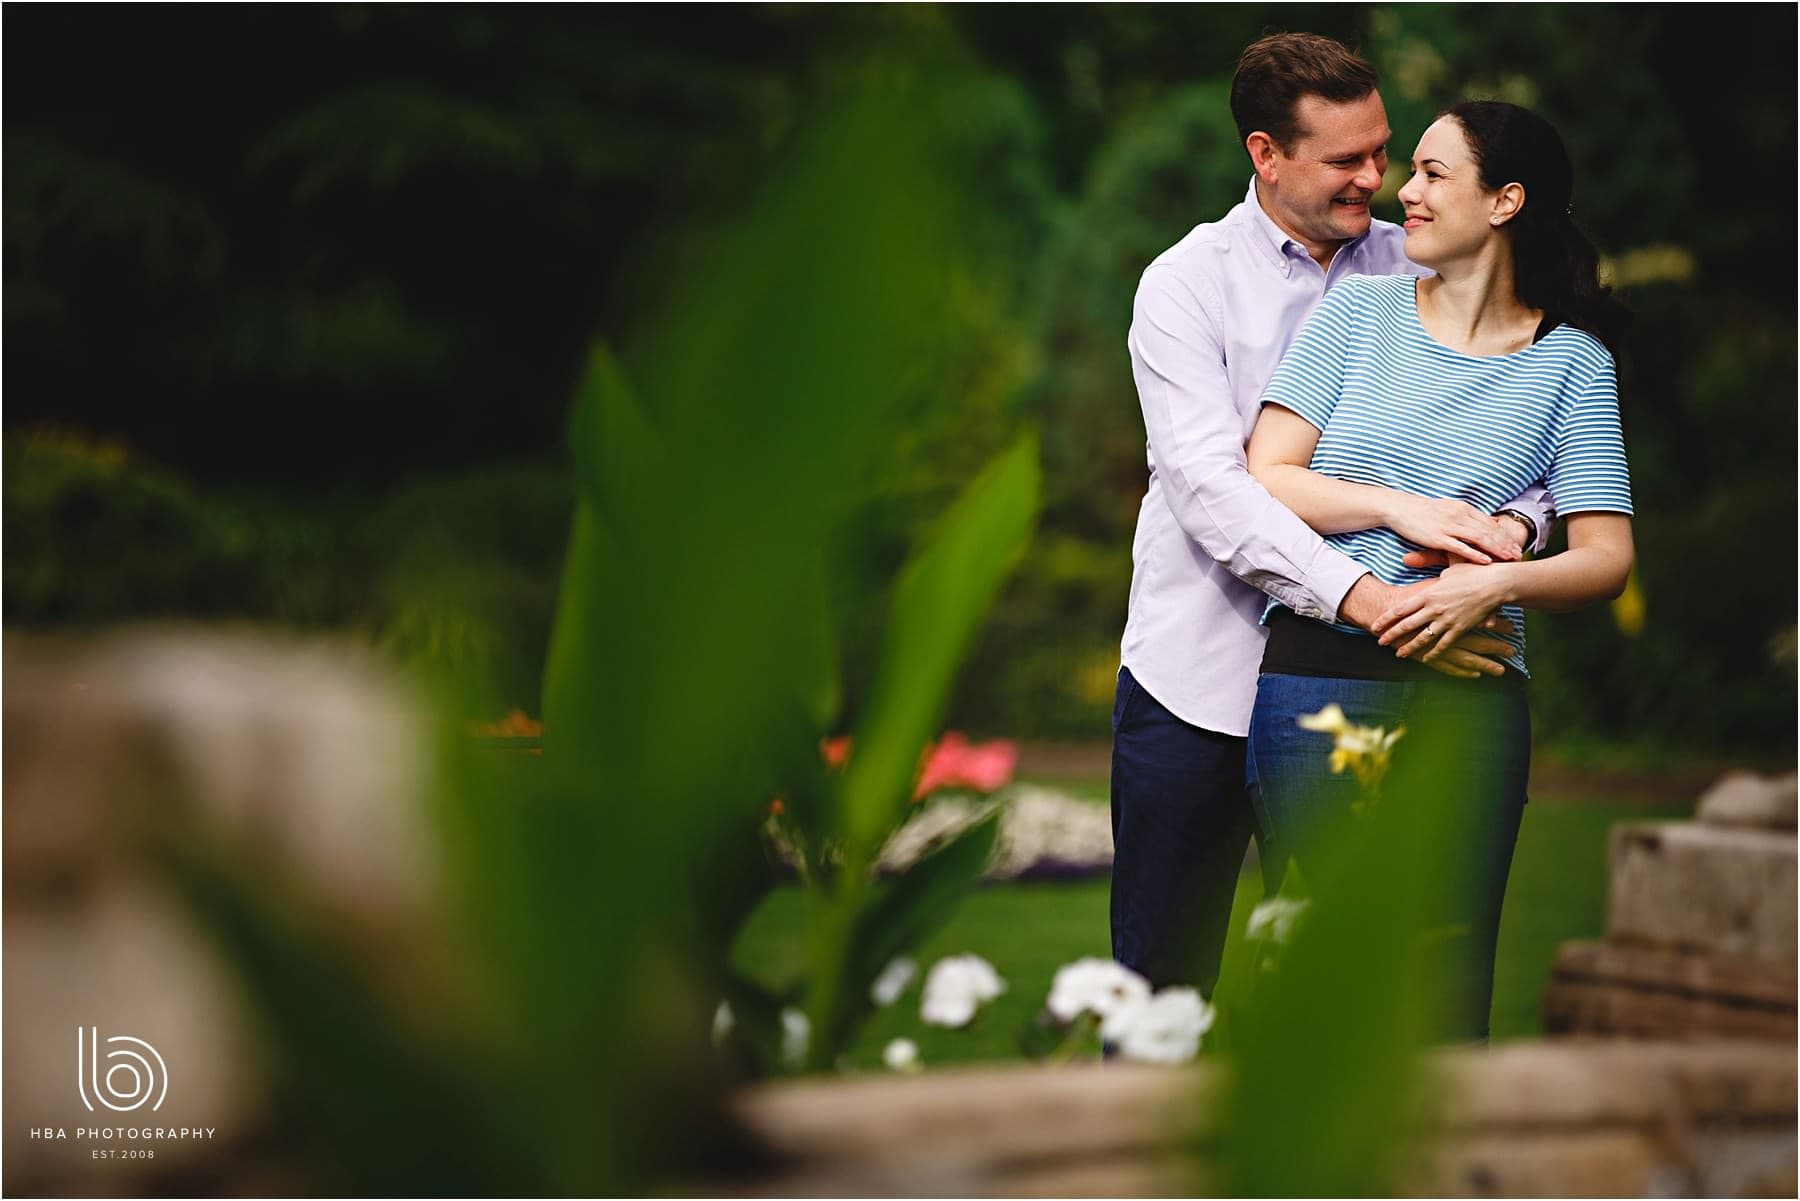 Lichfield_engagement_wedding_photos_0004